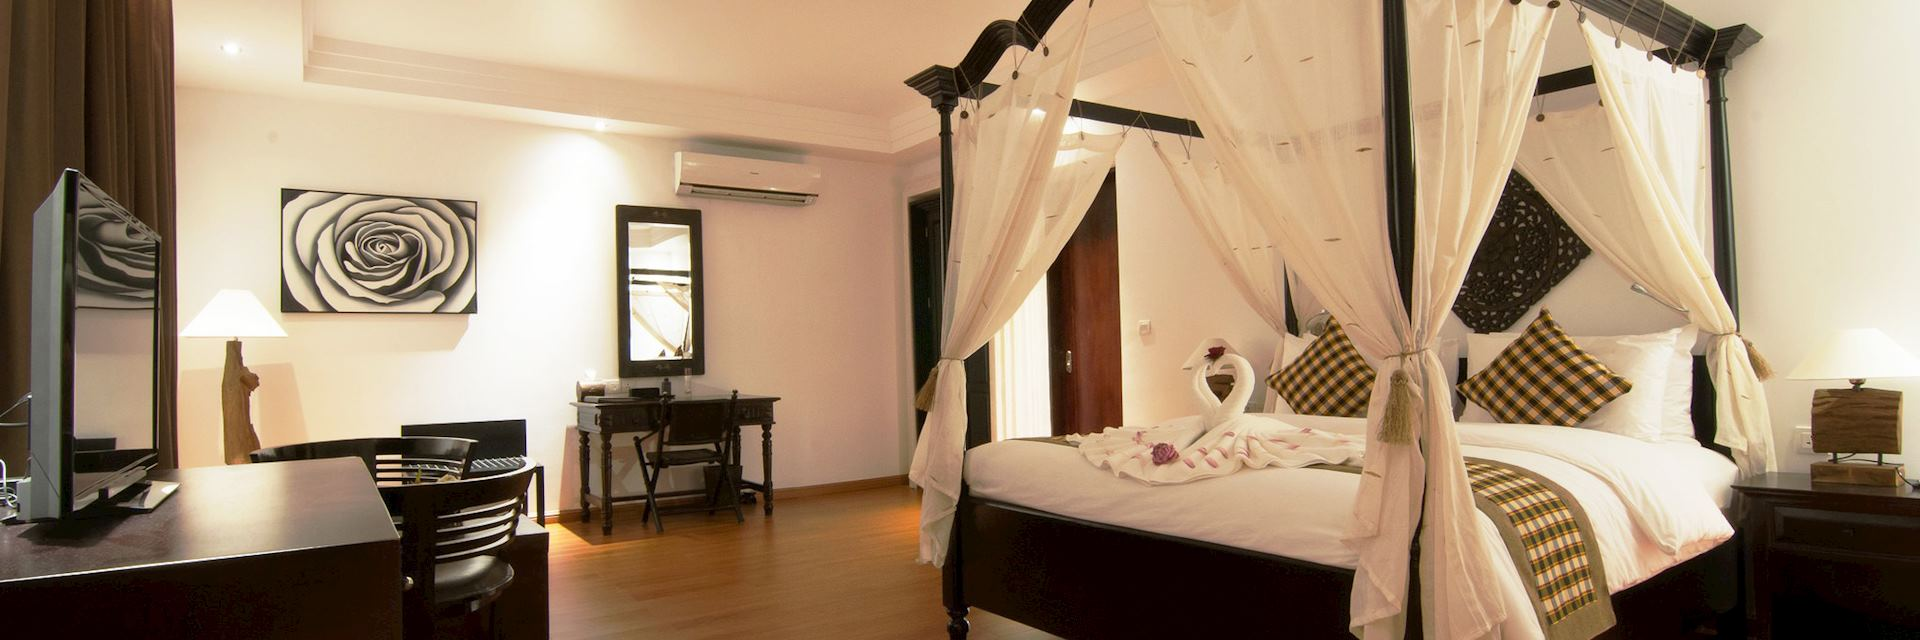 La Rose Suites, Phnom Penh